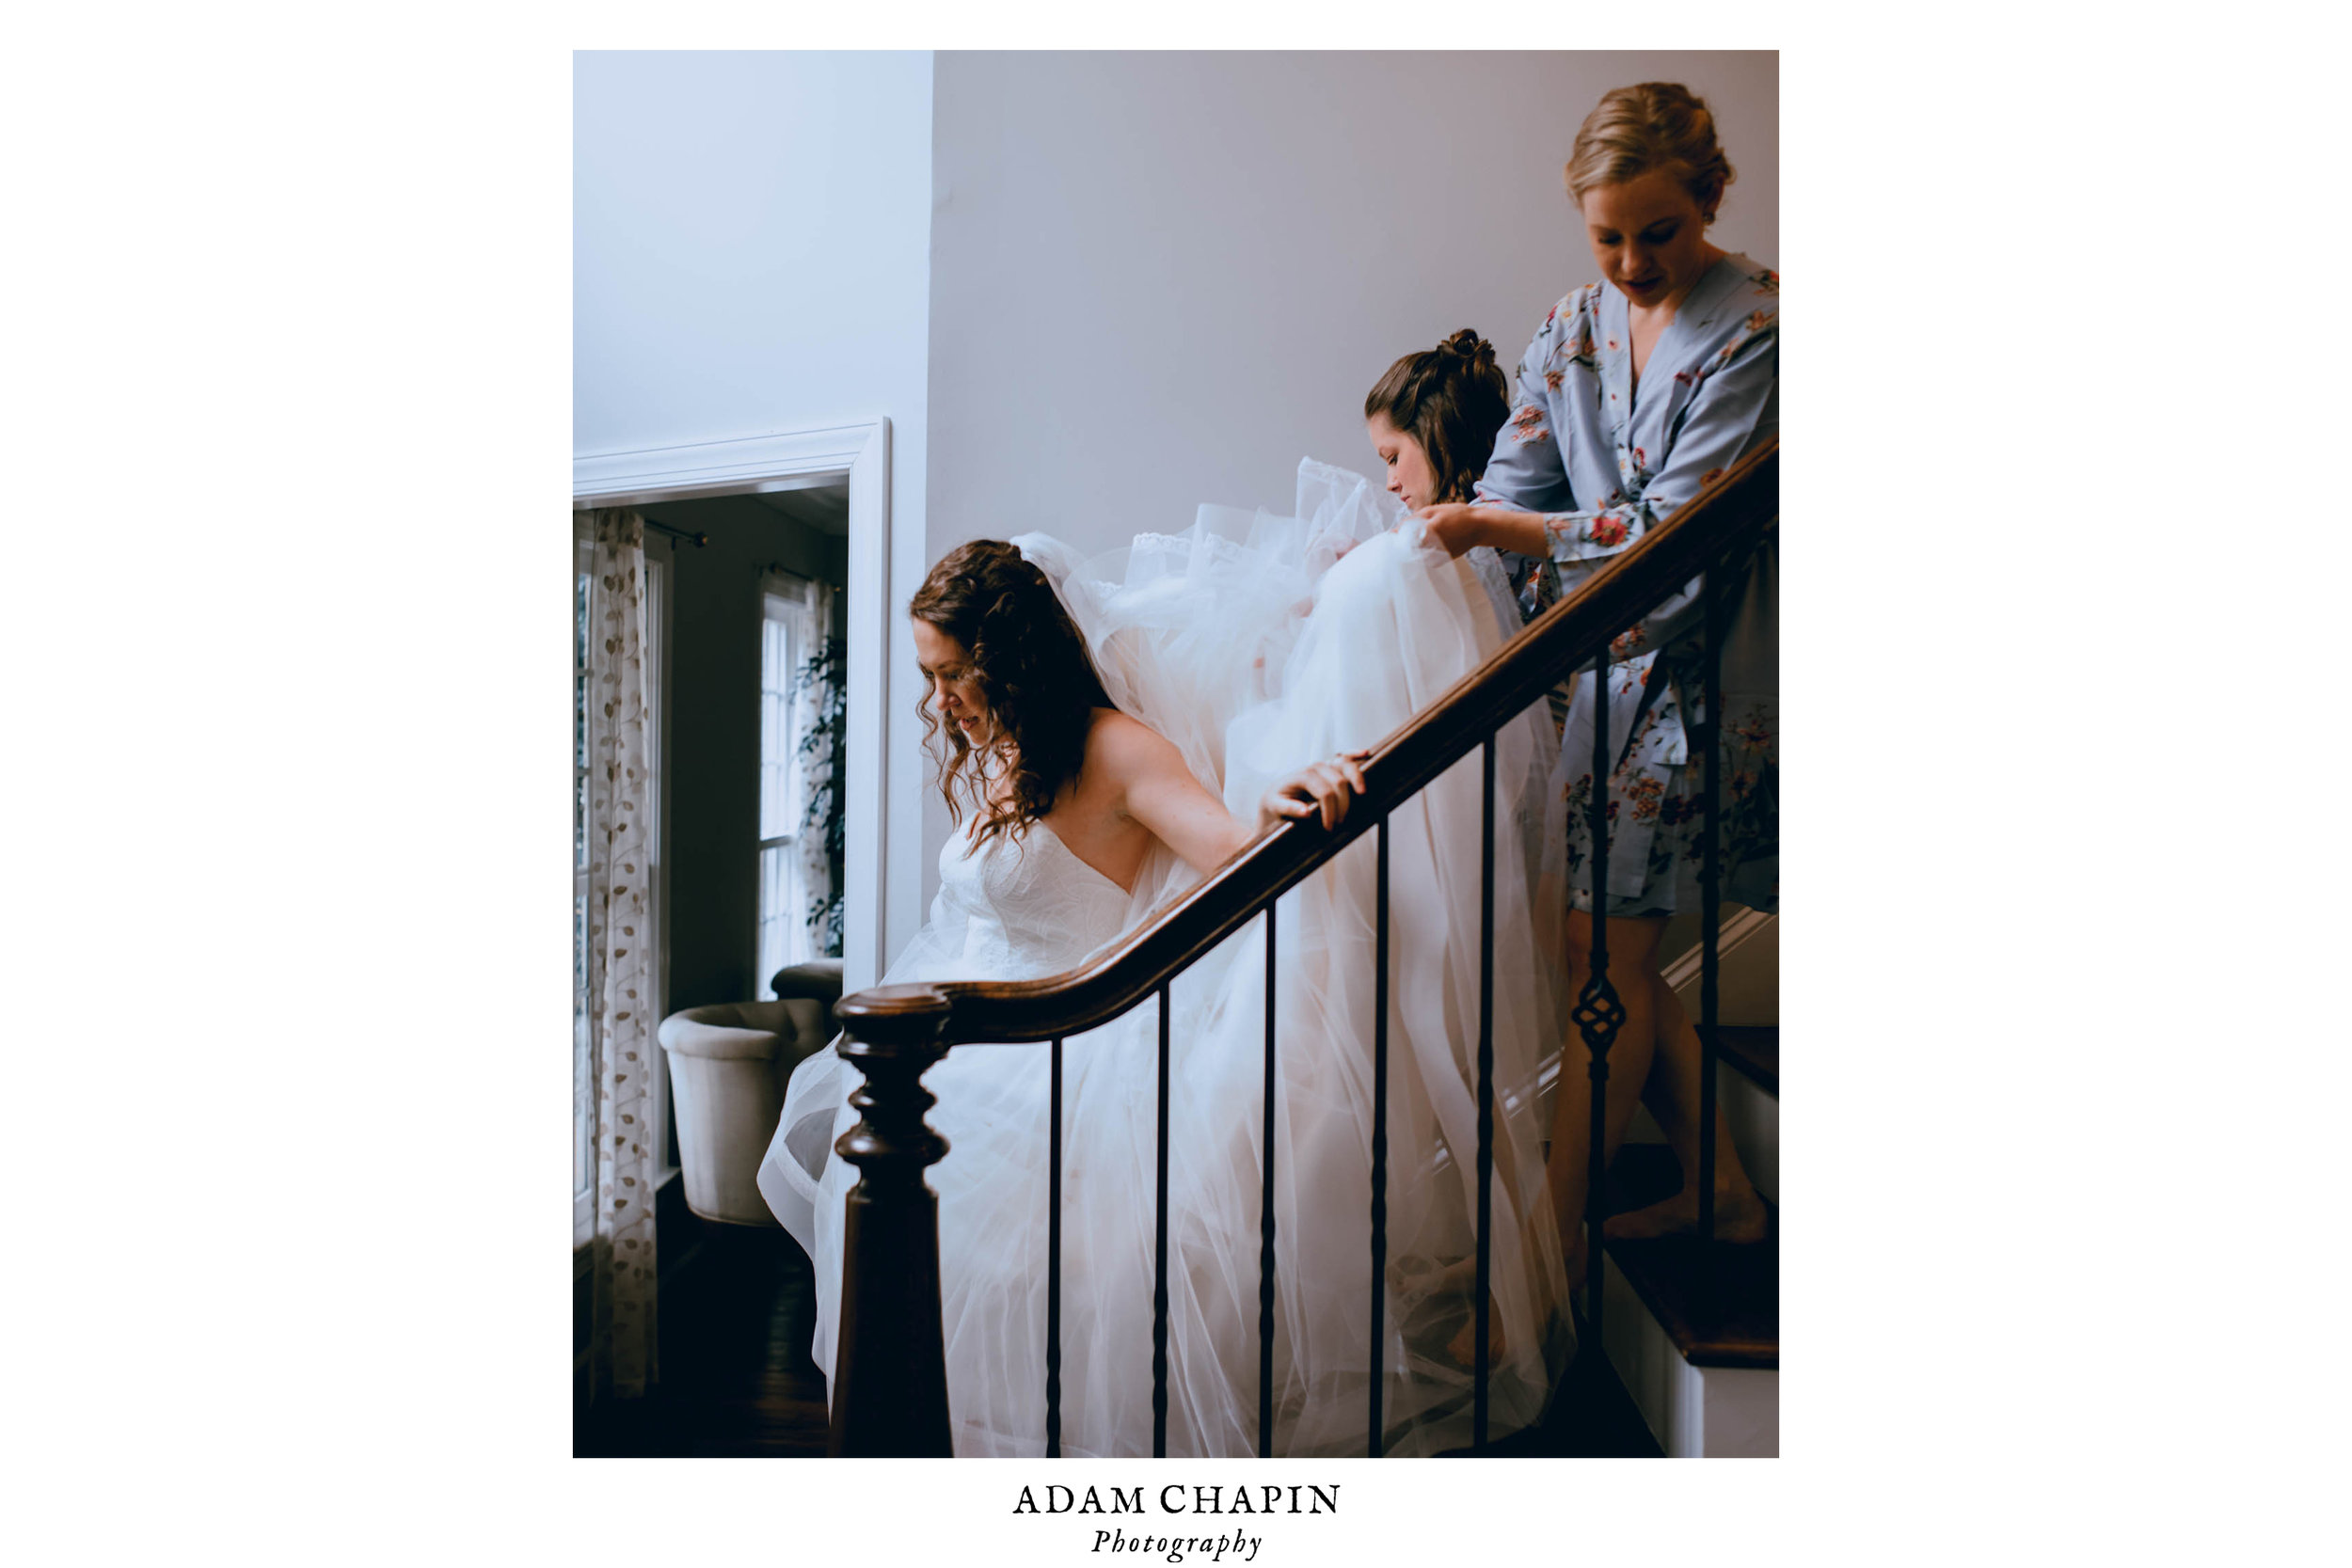 bride coming down the stairs with her bridesmaids carrying her veil and dress